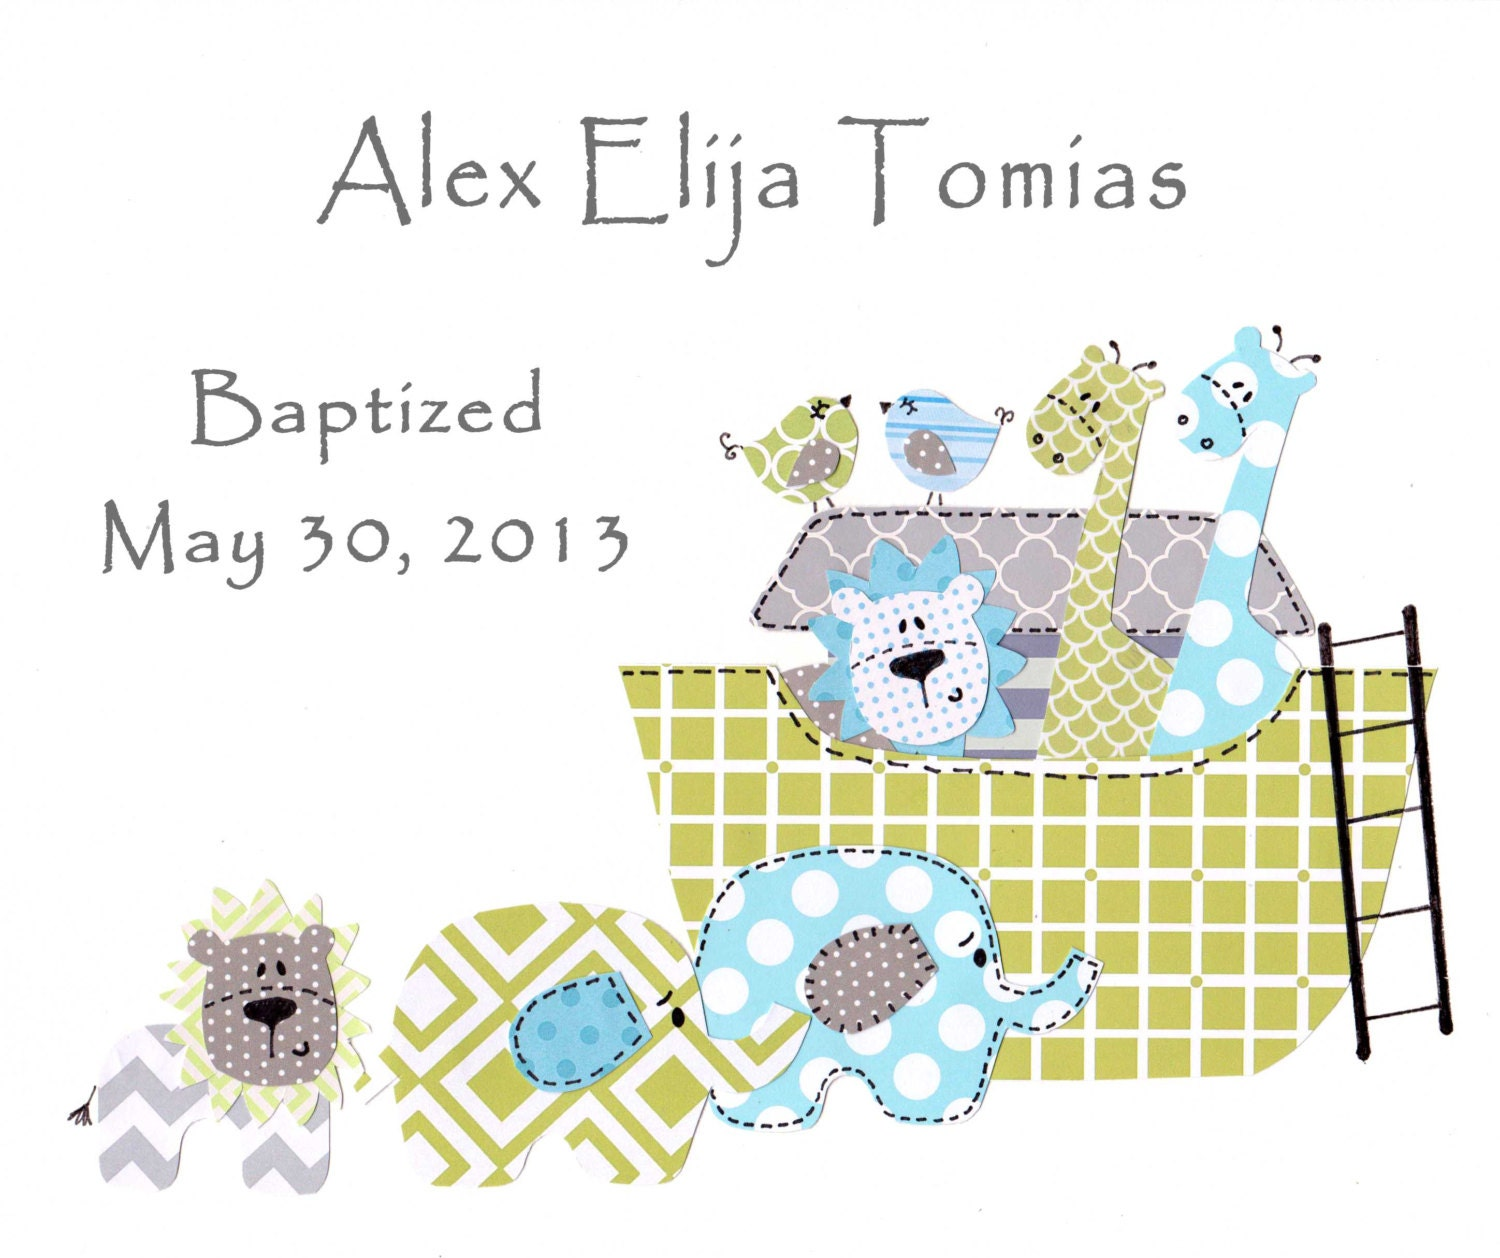 Gift Baby Boy Baptism : Boys baptism gift christening gifts for baby boy